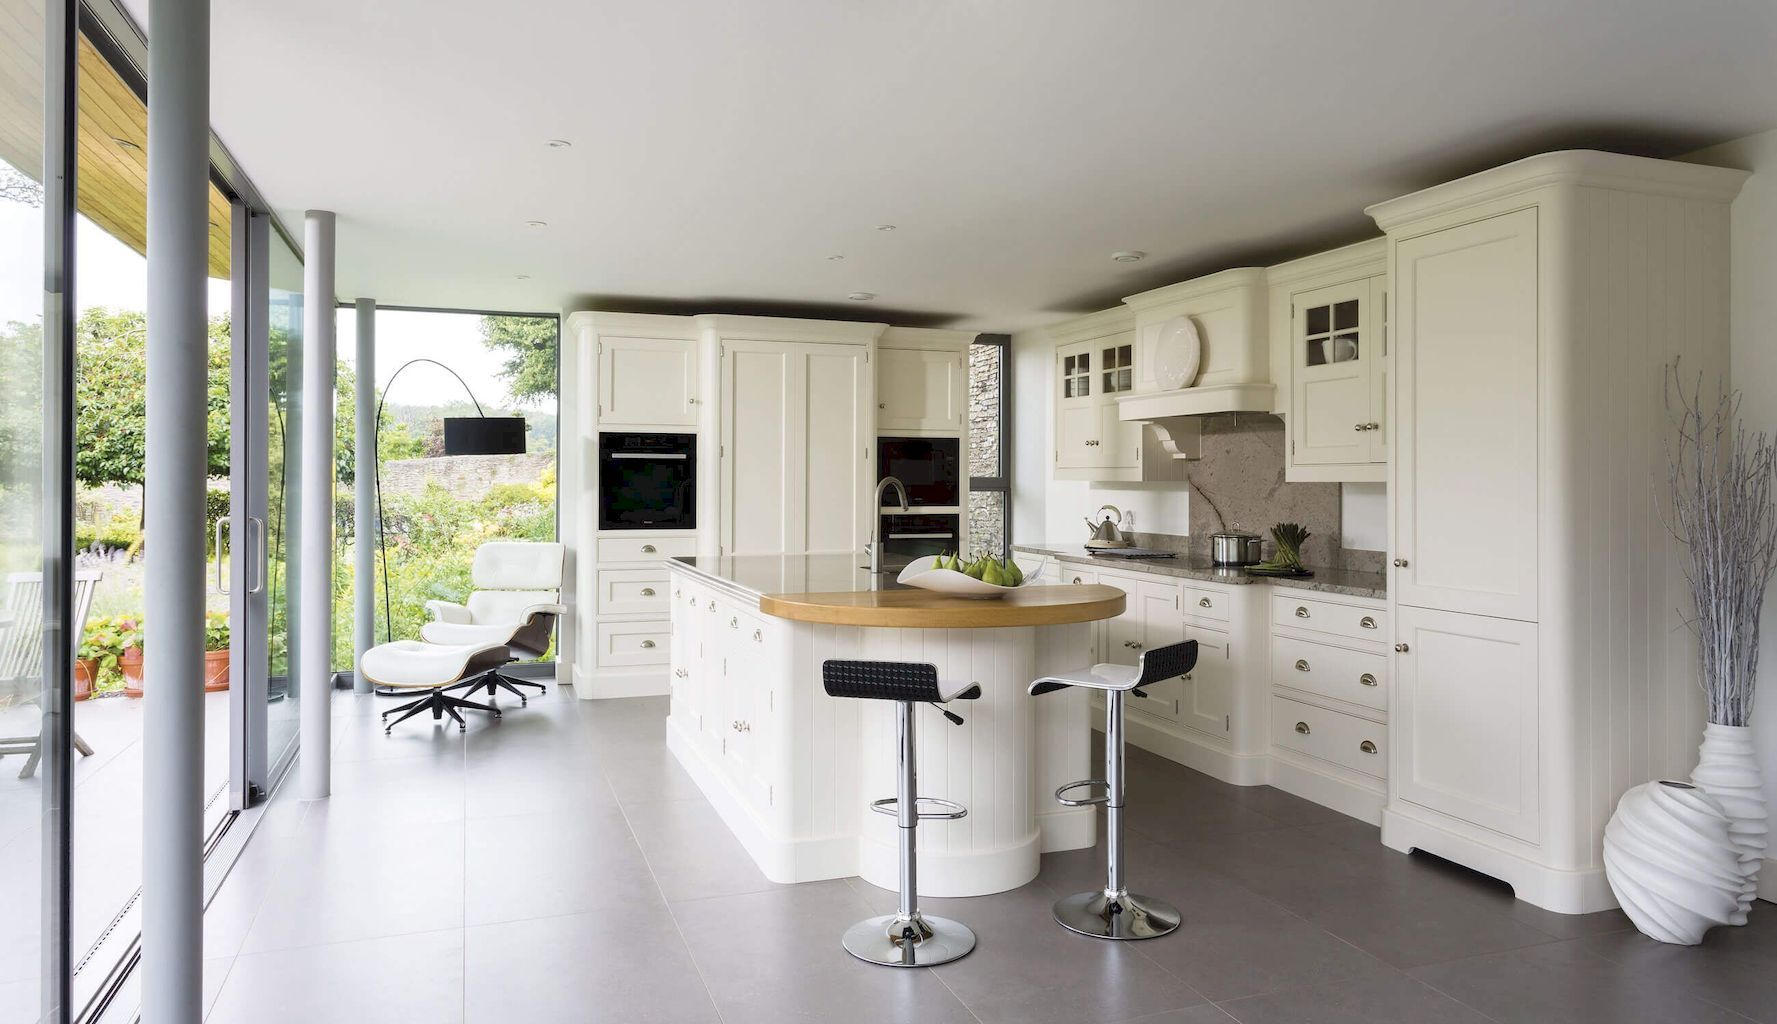 80+ Beautiful Bespoke Kitchens Ideas For The Heart of Your Home ...